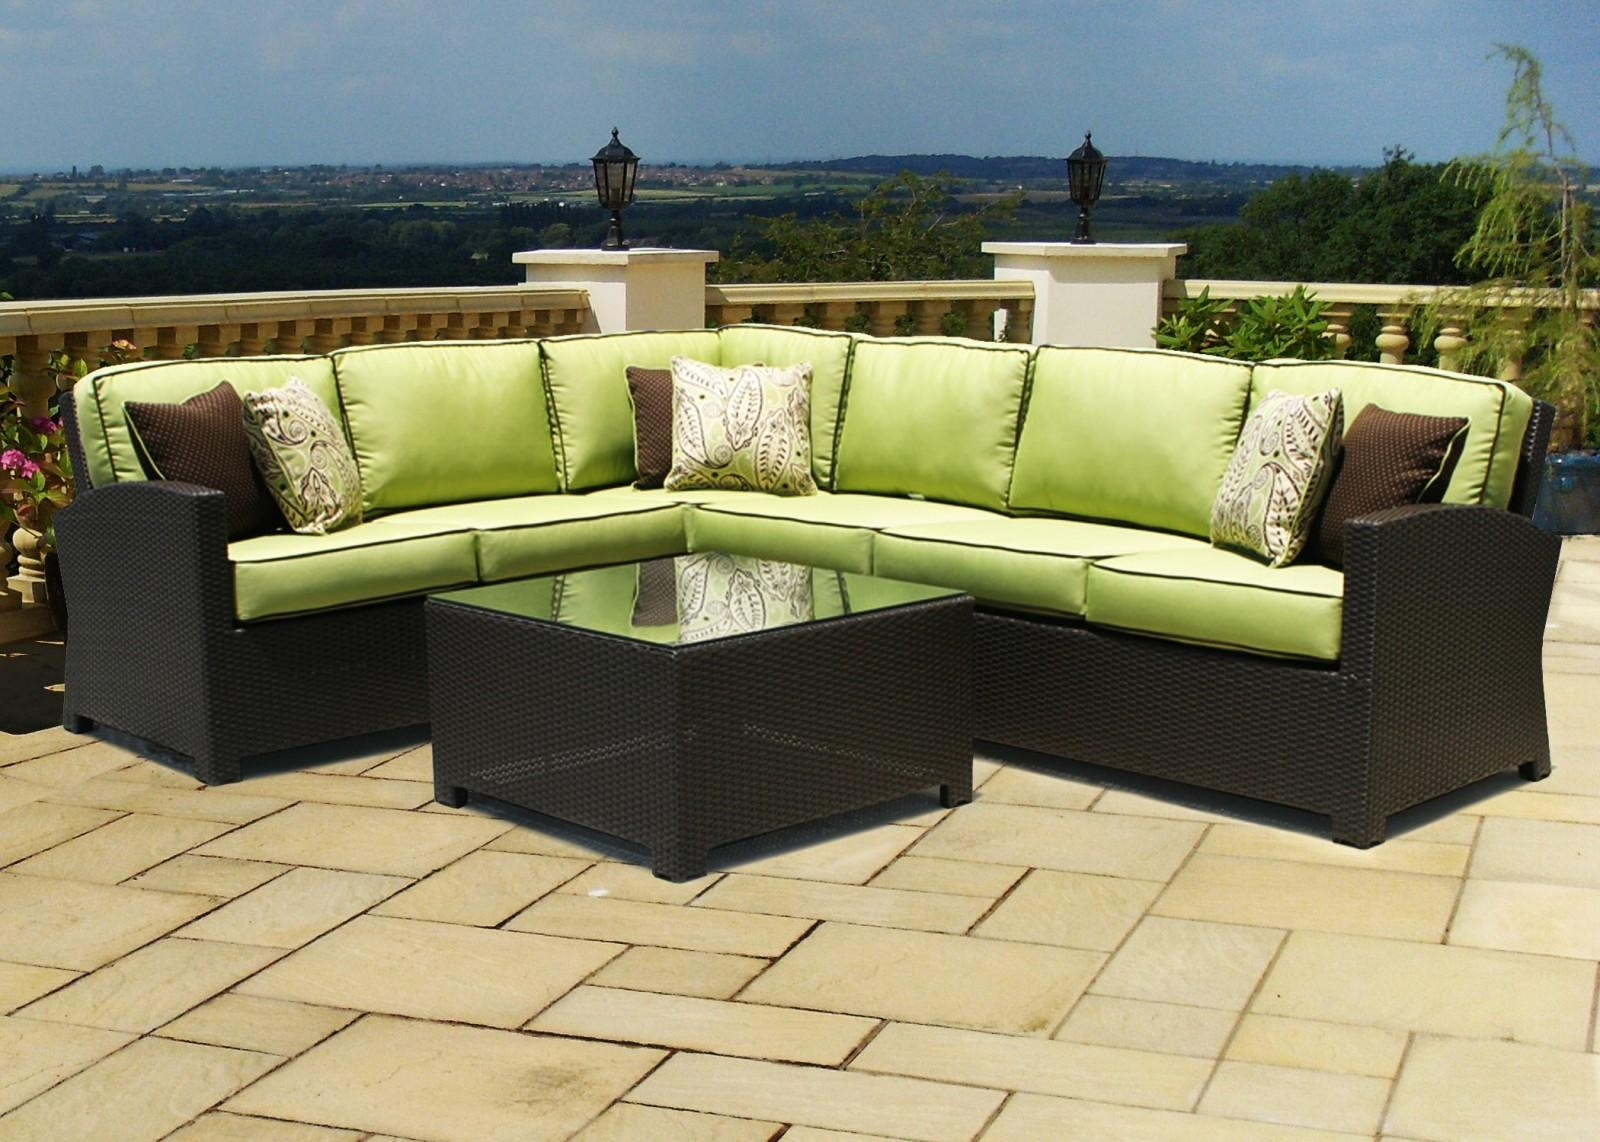 Sofas : Marvelous Outside Chair Cushions Rattan Furniture Cushions Throughout Cheap Patio Sofas (View 13 of 22)